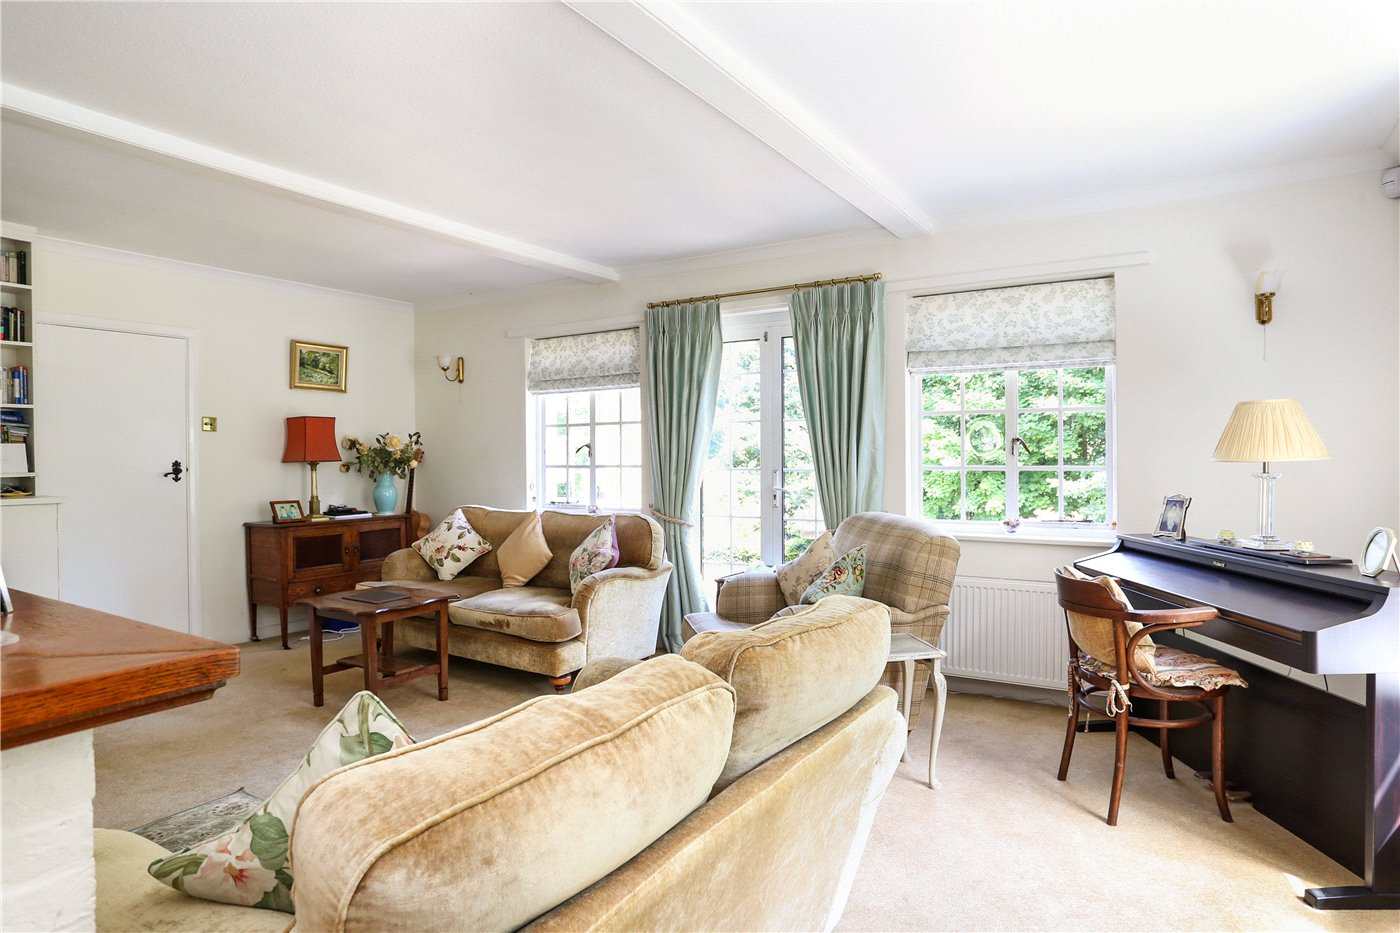 3 bedroom property for sale in Cams Hill Lane, Hambledon, PO7 ...